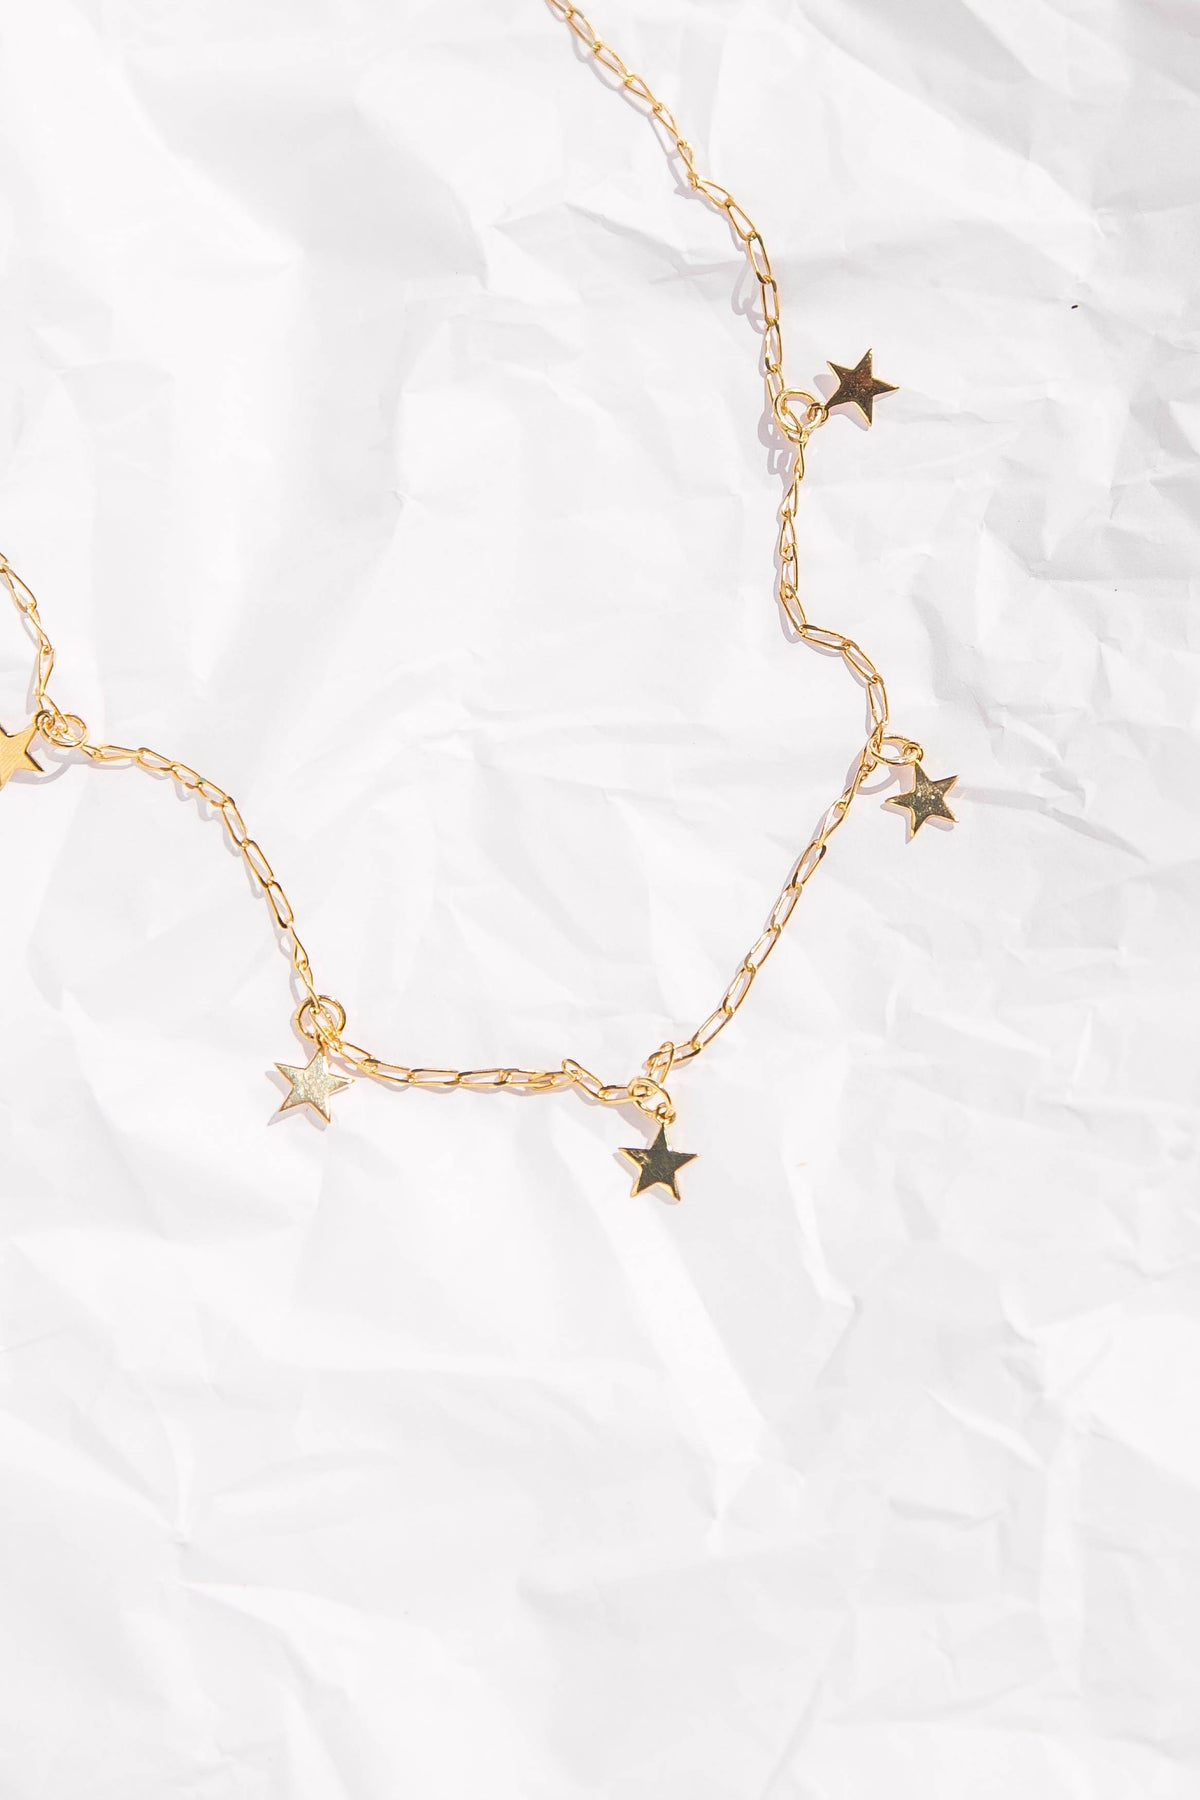 The Gold Constellation Necklace